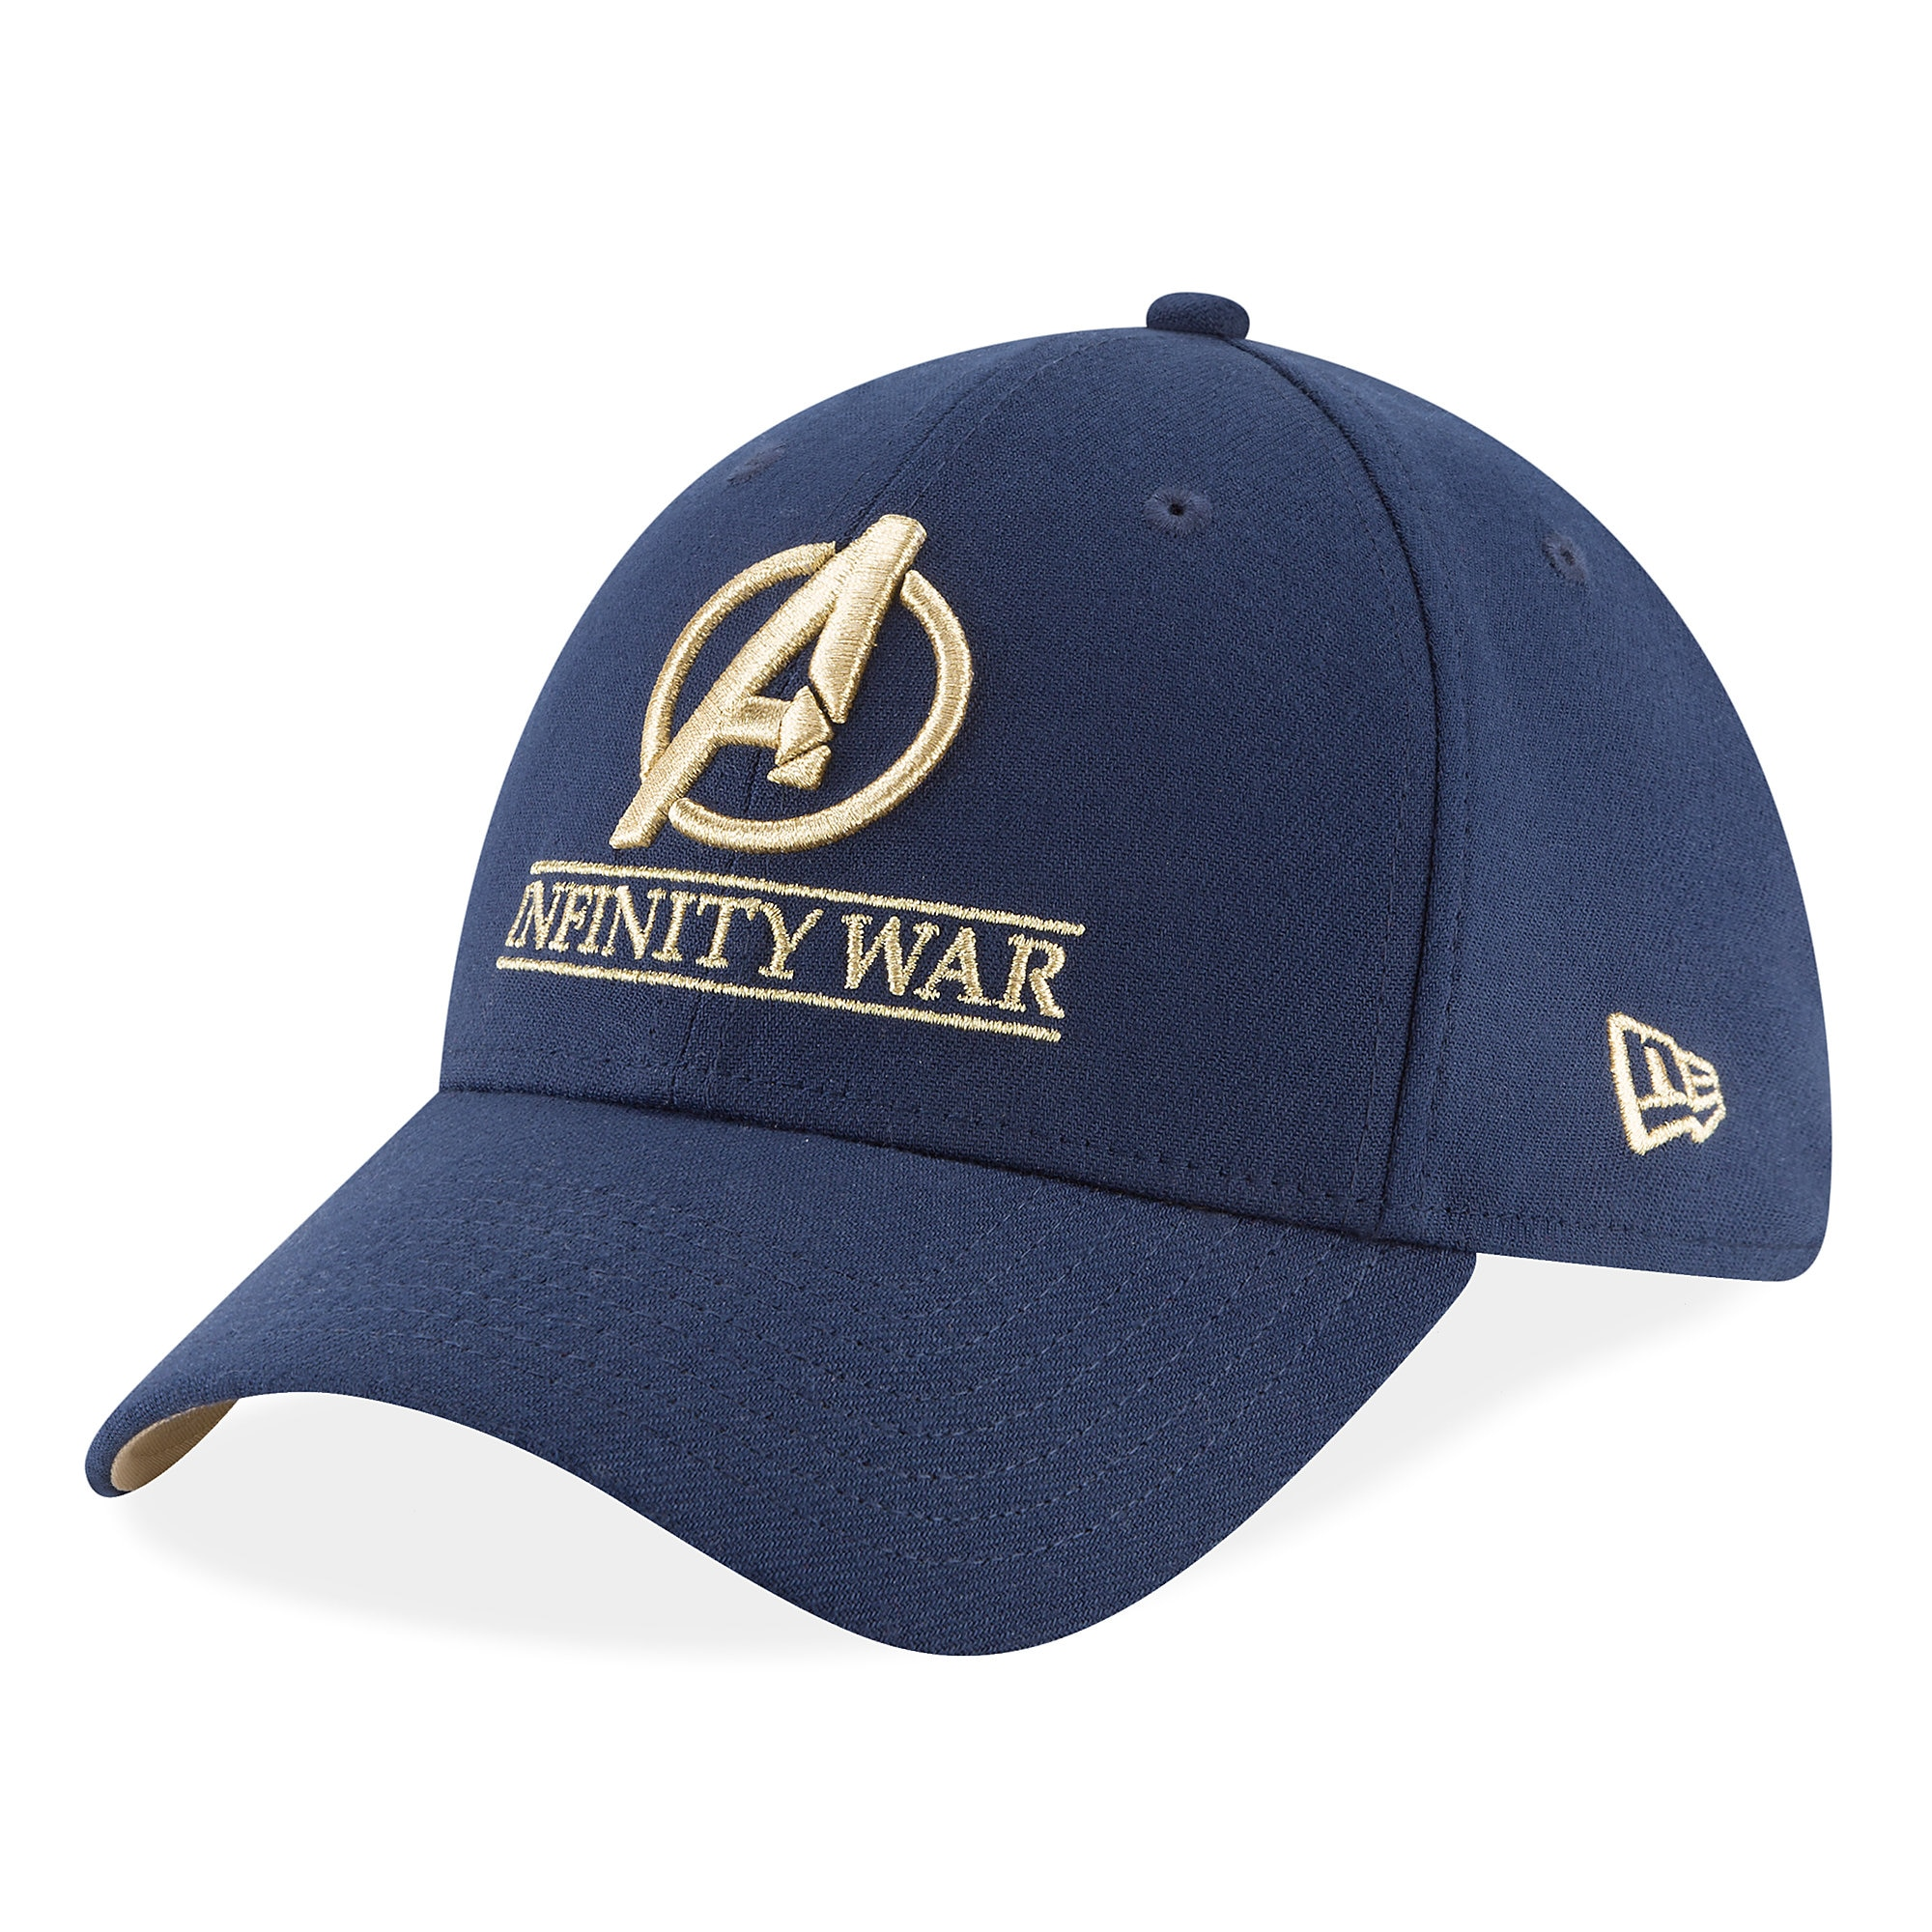 3c12cf78a73 Marvel s Avengers  Infinity War Marvel Crew Cap for Adults by New Era